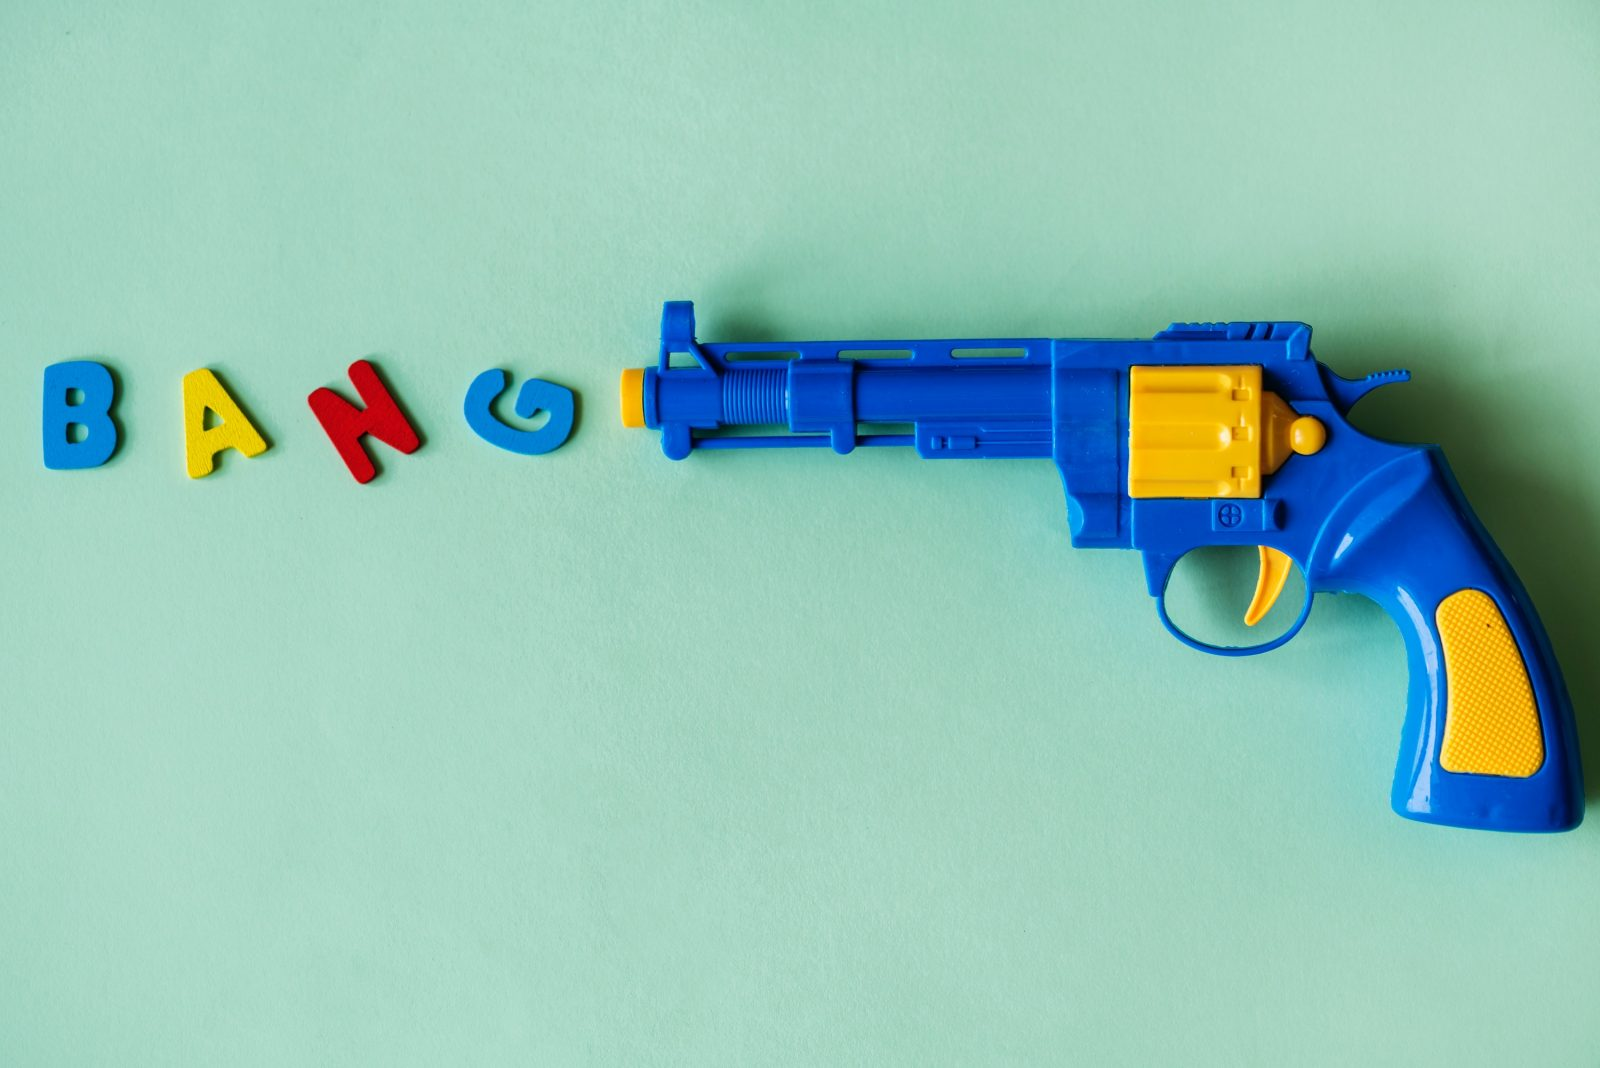 How 3D Printed Guns Has Become a Threat to Public Safety